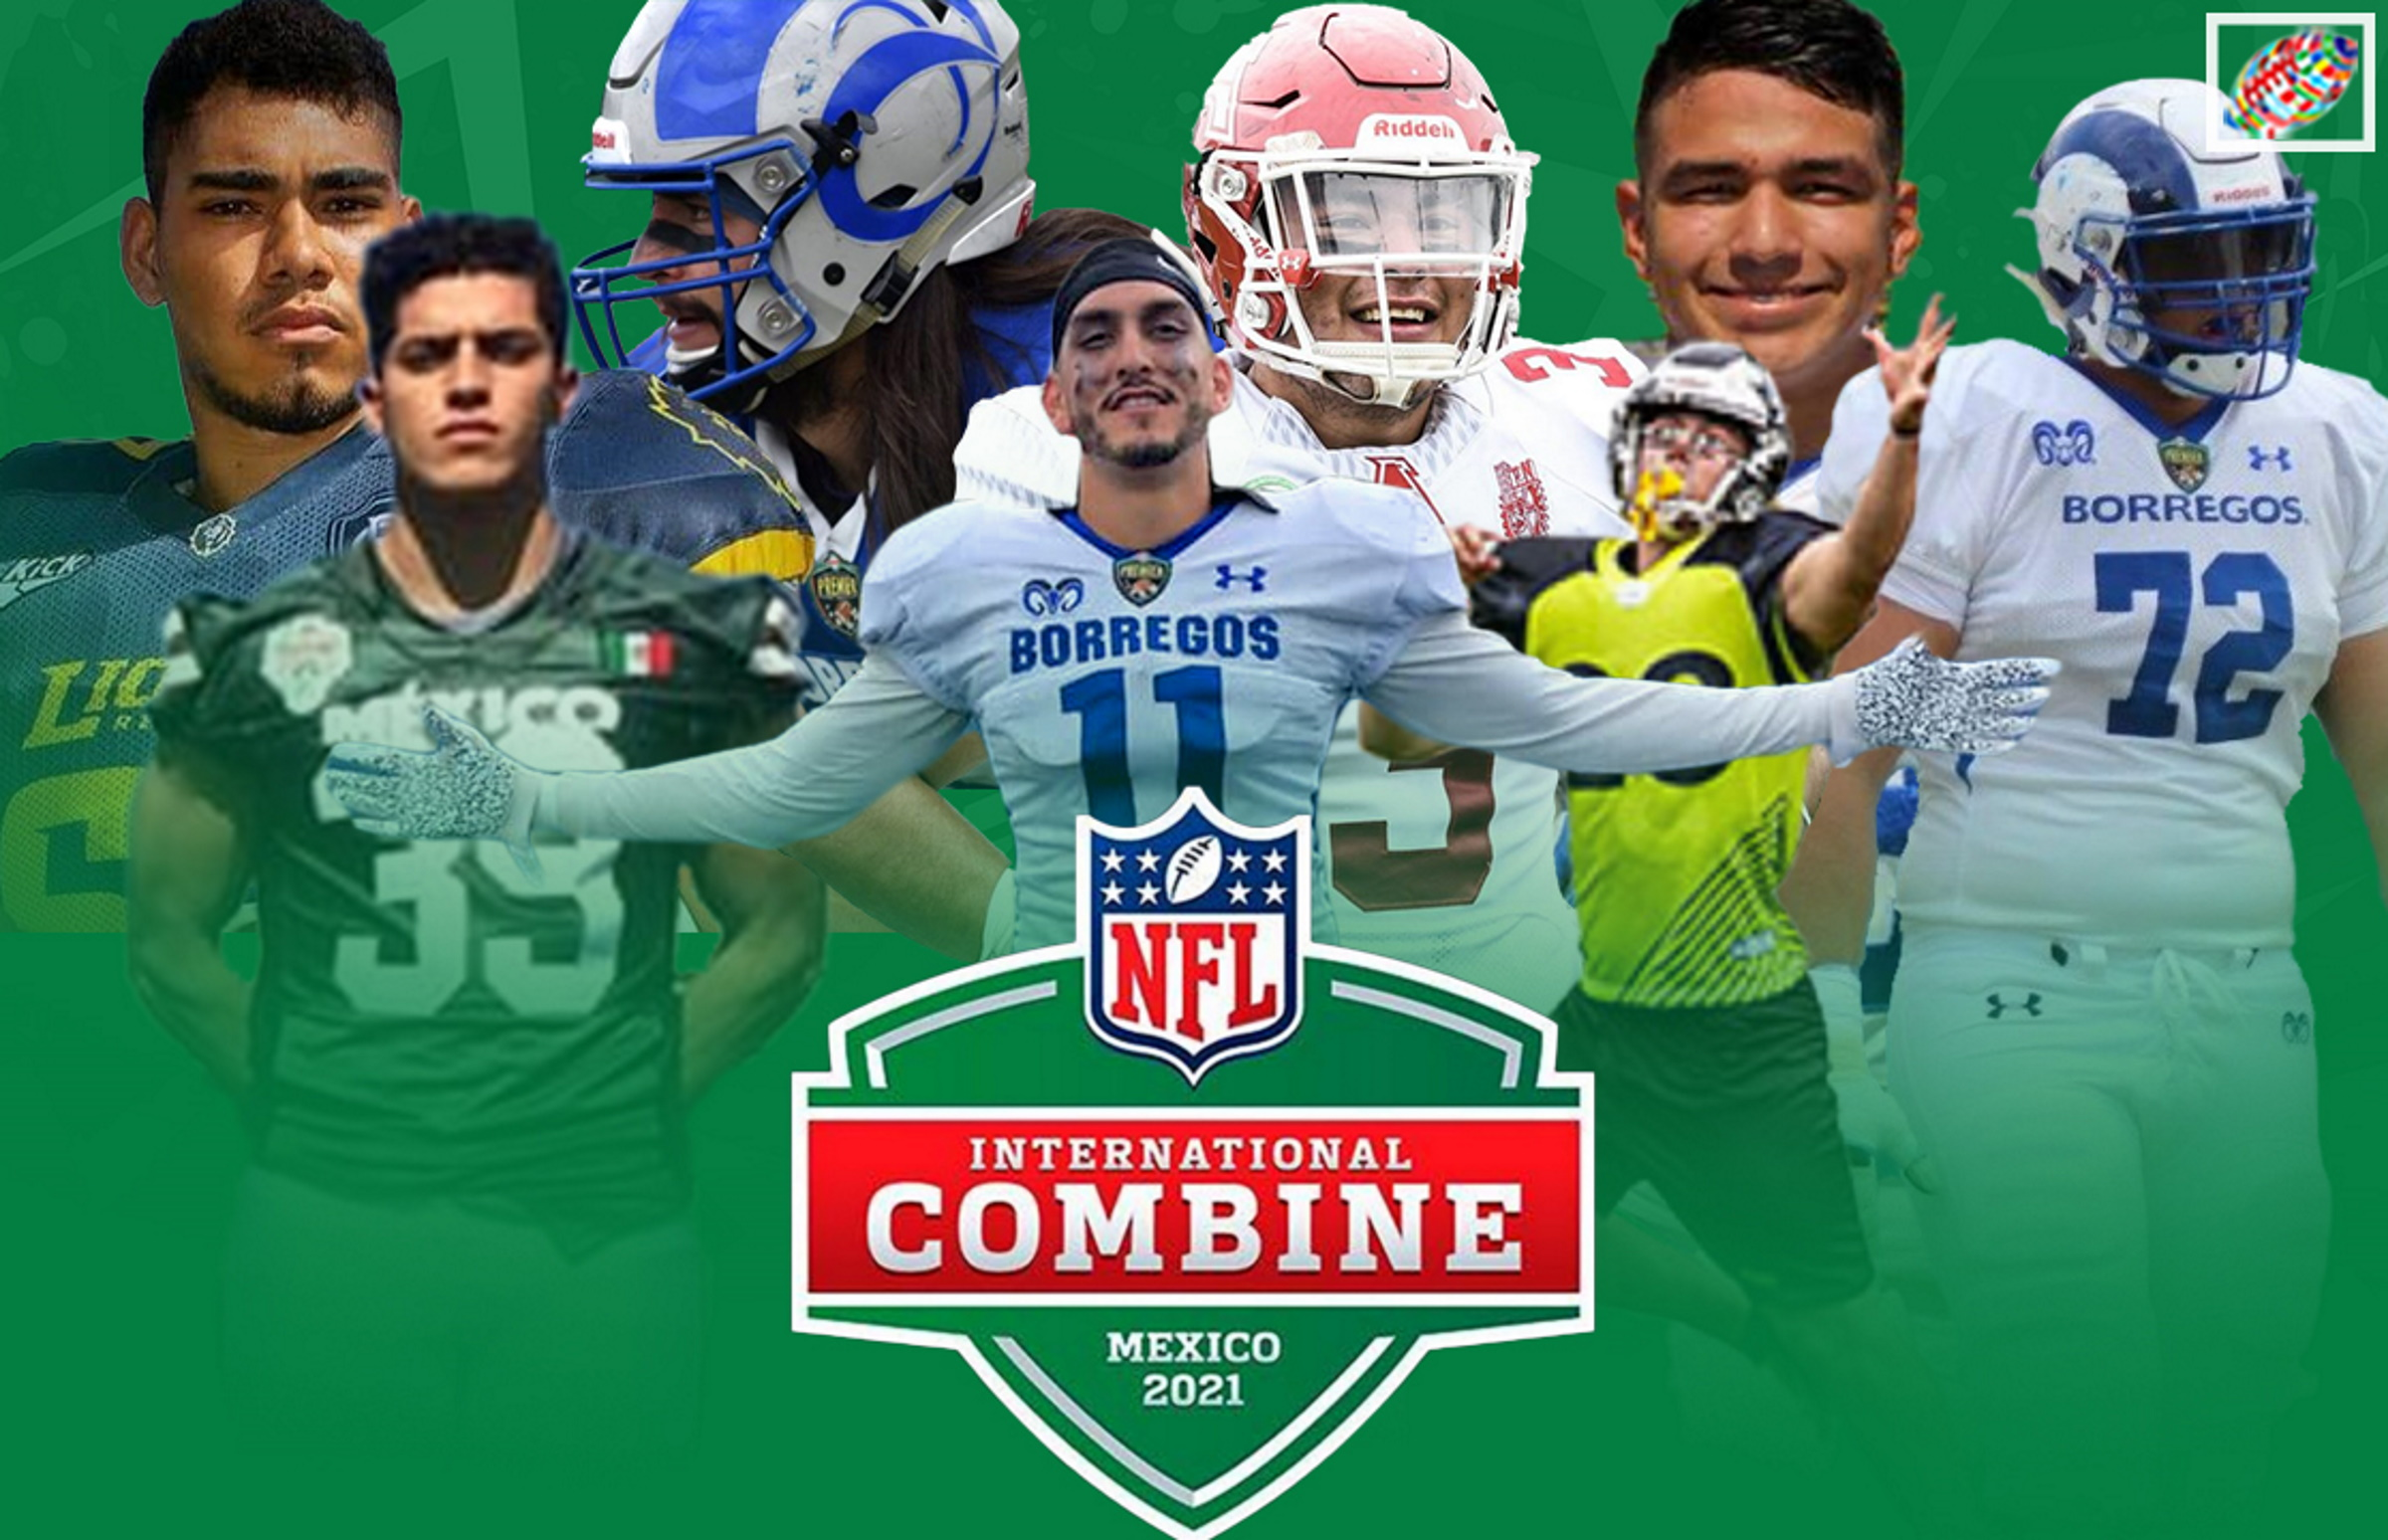 NFL-2021-Mexican-combine-Graphic.jpg